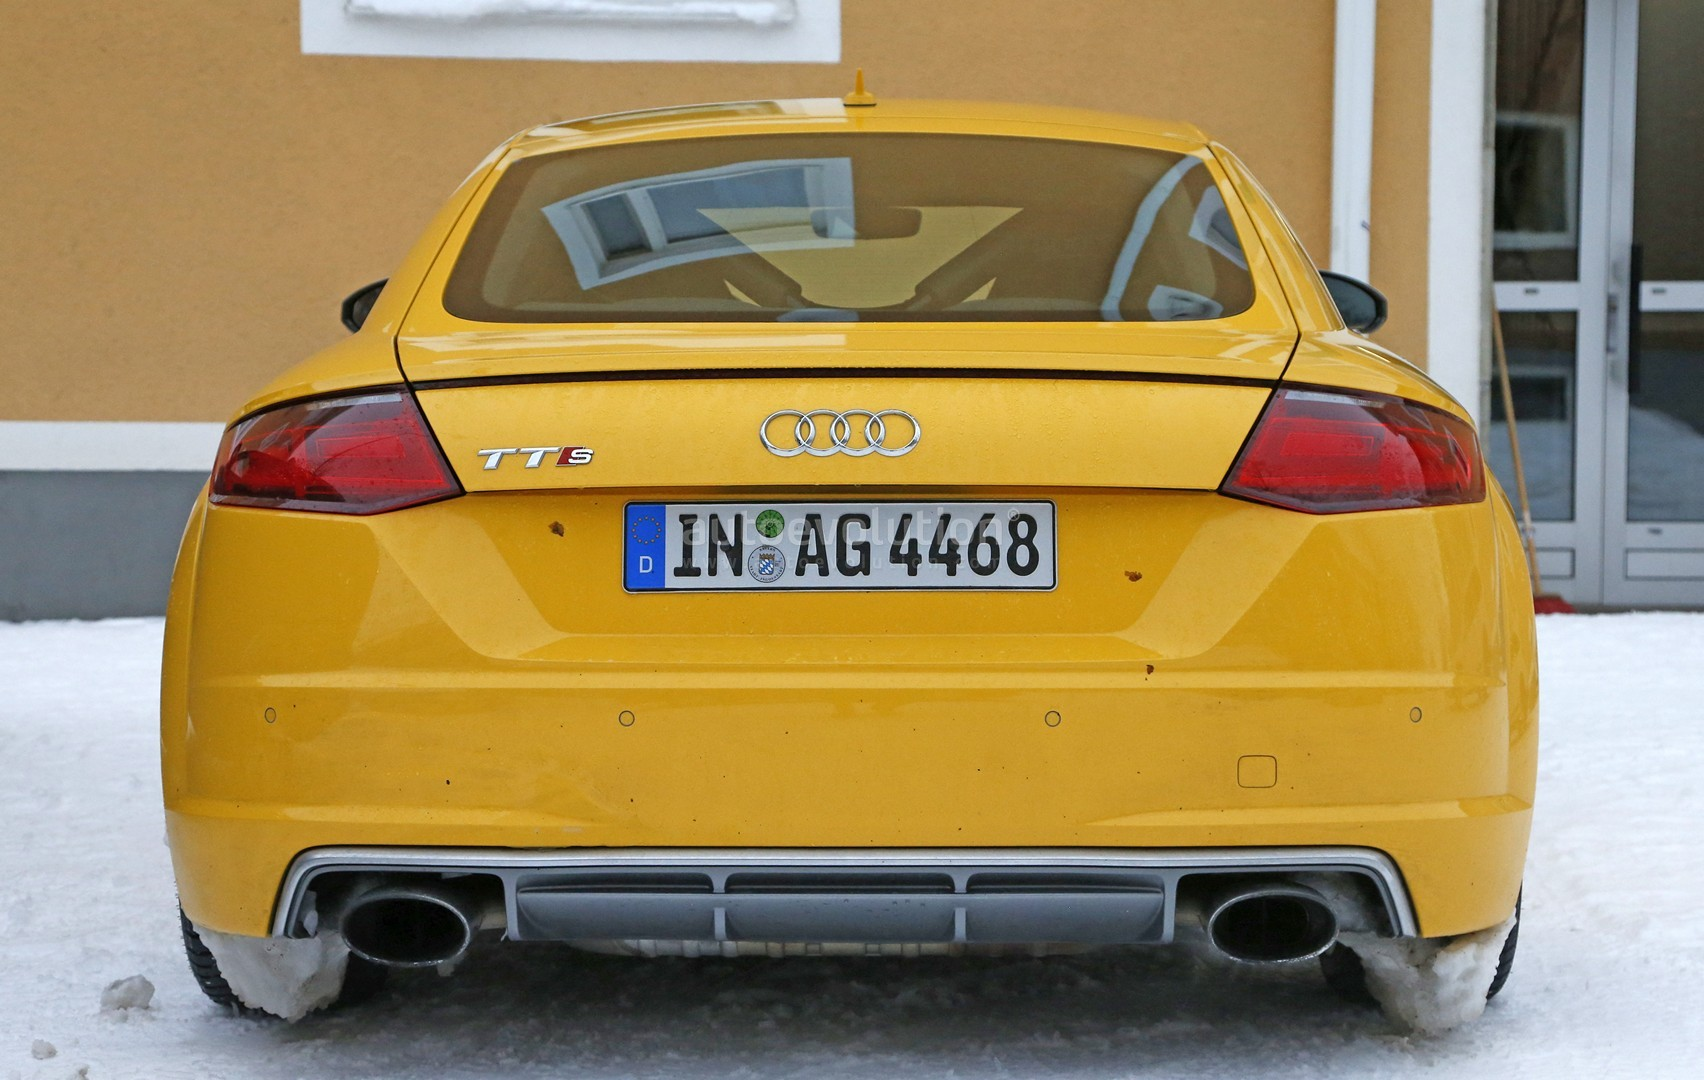 2017 audi tt rs spy photos reveal manual gearbox for the first time rh autoevolution com 2011 Audi TT Owner's Manual New Audi TT